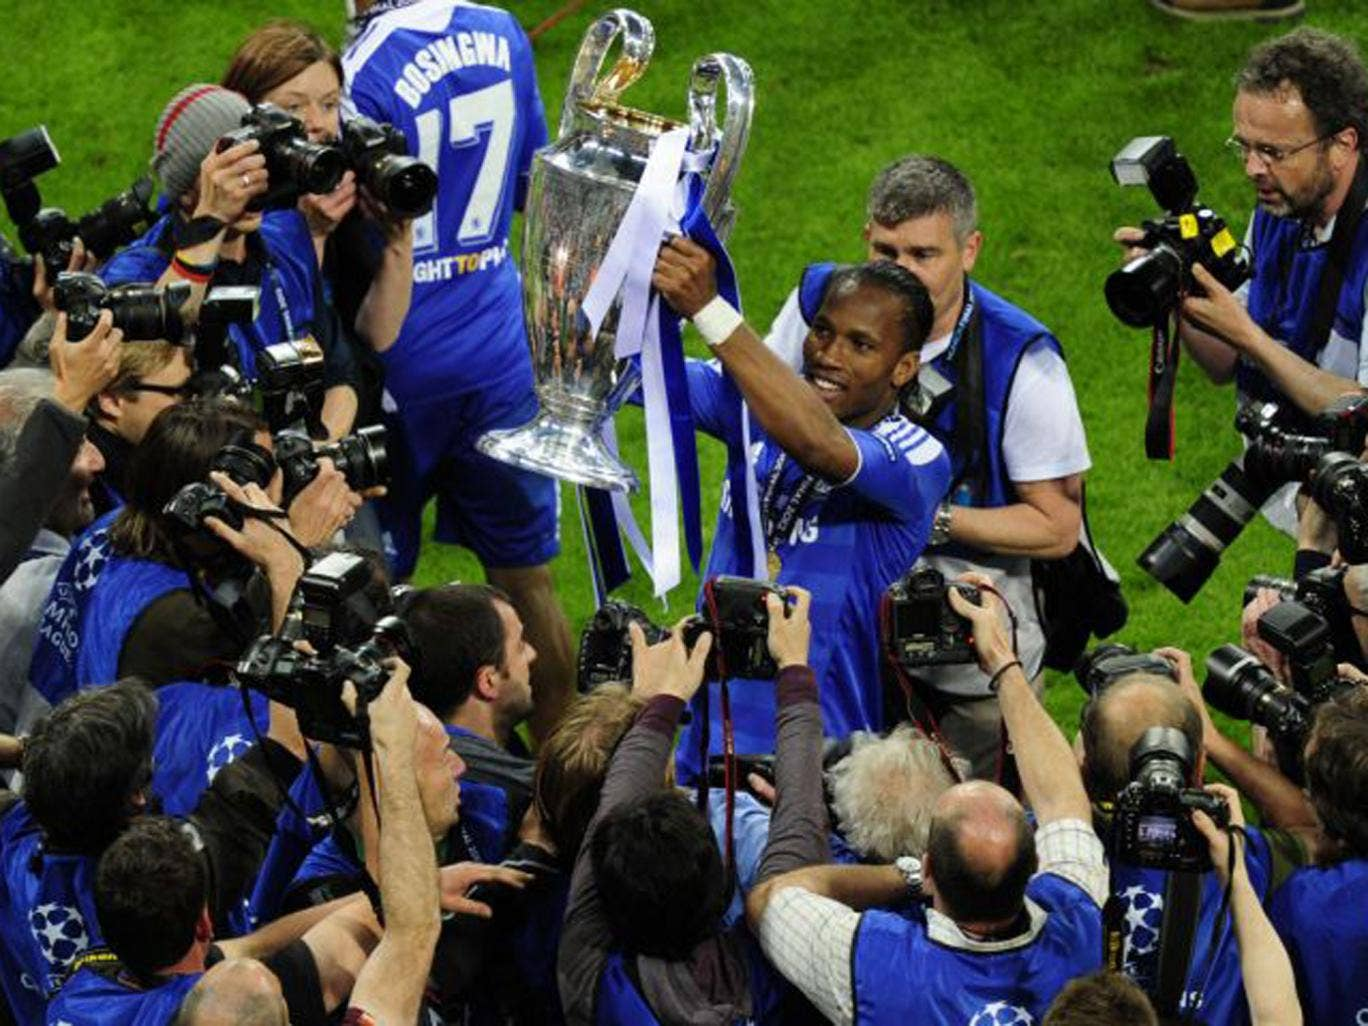 Didier Drogba holds aloft the European Cup after Chelsea's triumph in 2012